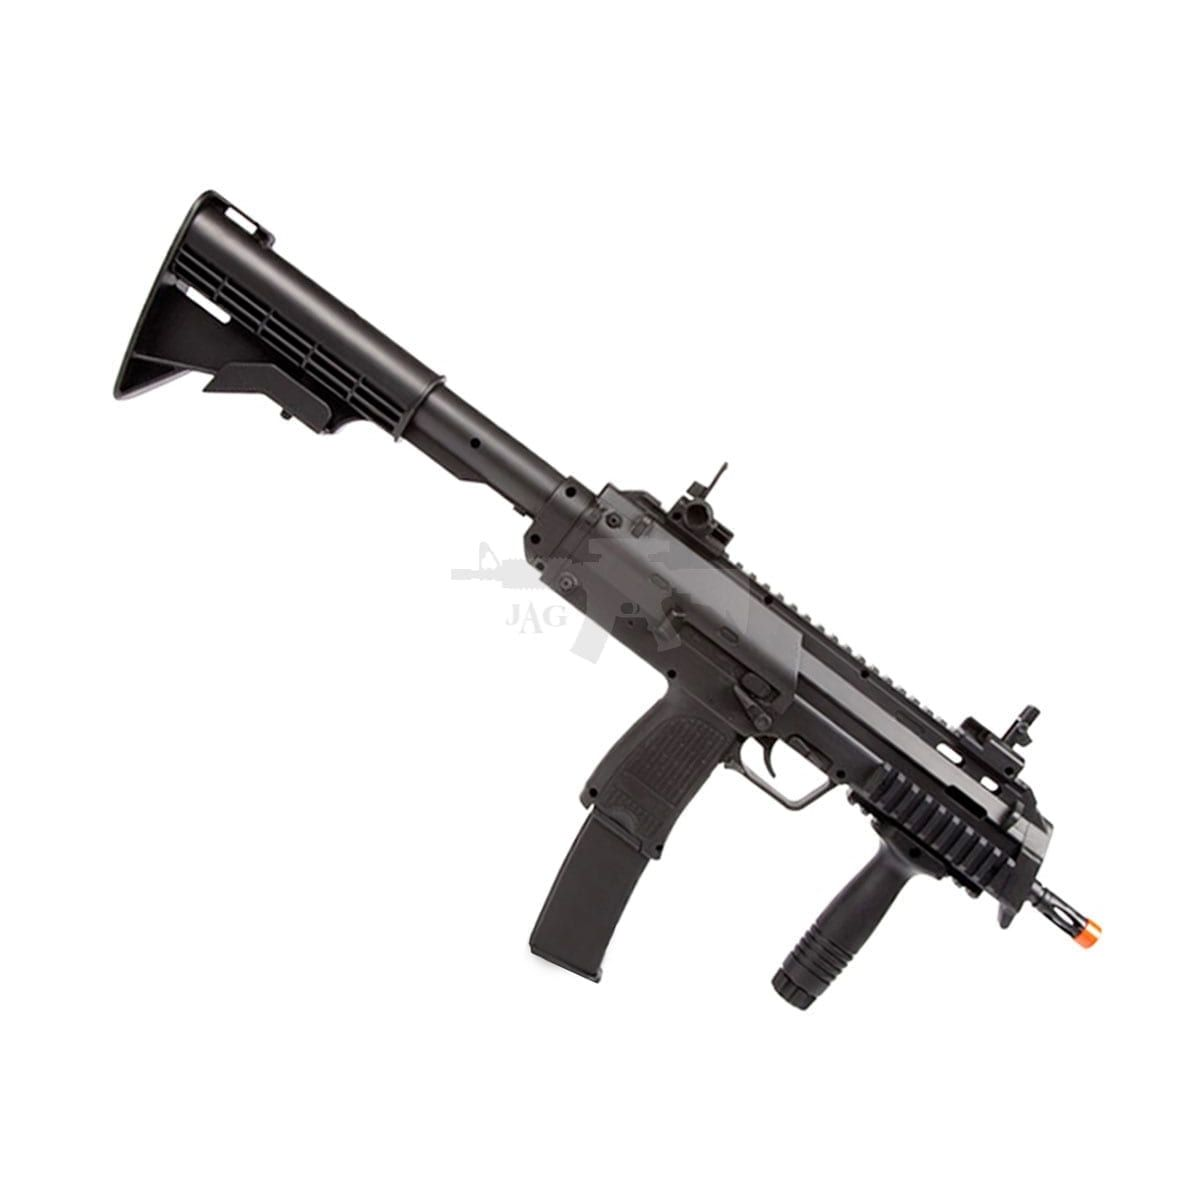 D89 MP7 AIRSOFT ELECTRIC RIFLE